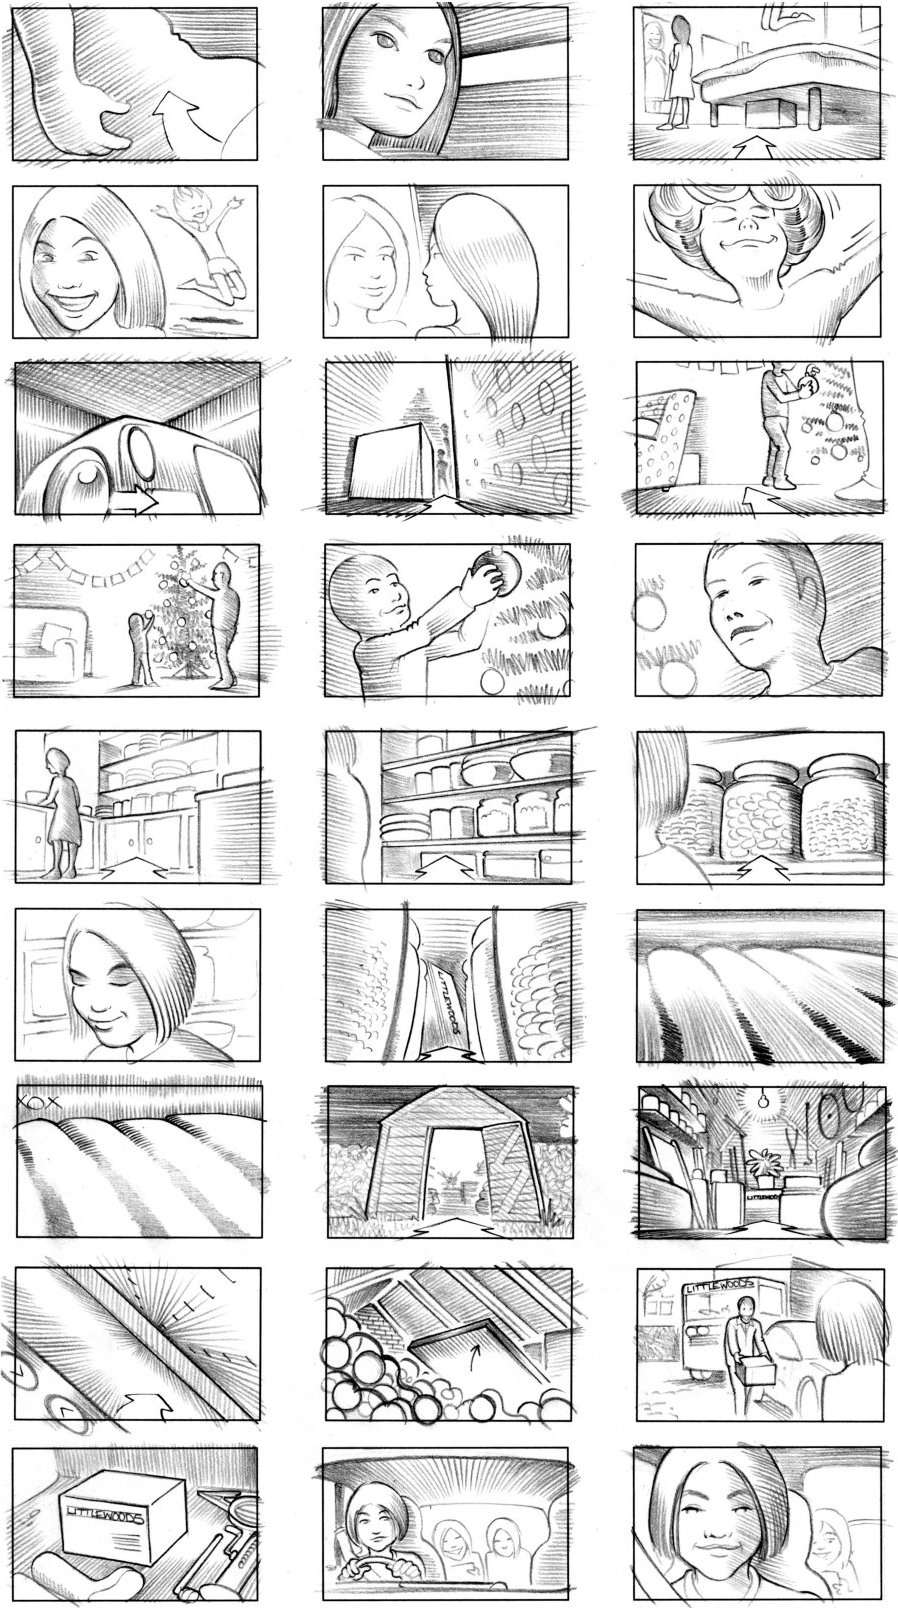 LITTLEWOODS STORYBOARD BY ANDY SPARROW